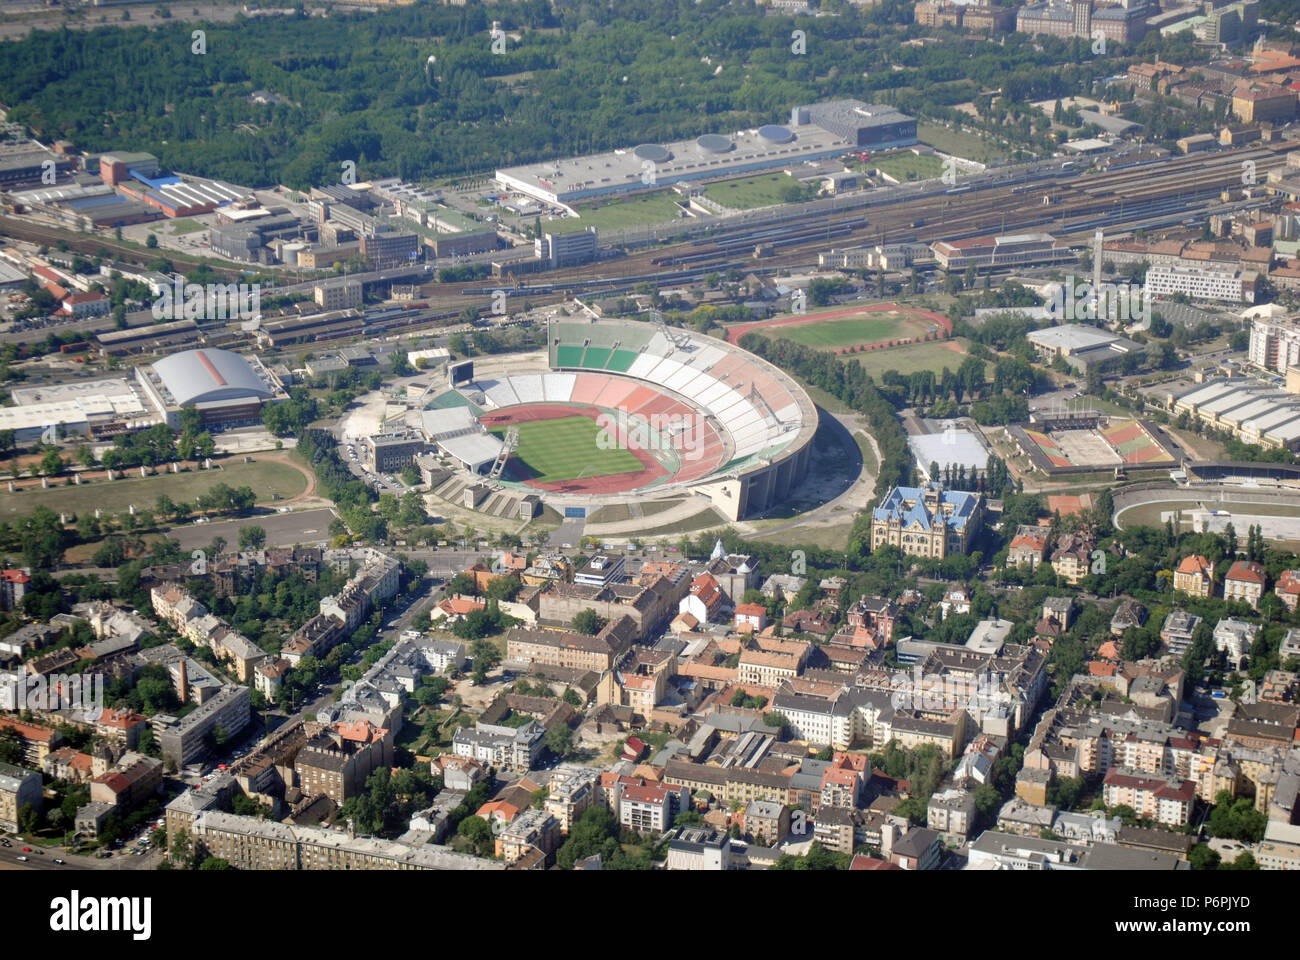 A bird's-eye view of the old Hungarian national stadium, named after Hungary's most successful football players of all times, Ferenc Puskás. - Stock Image